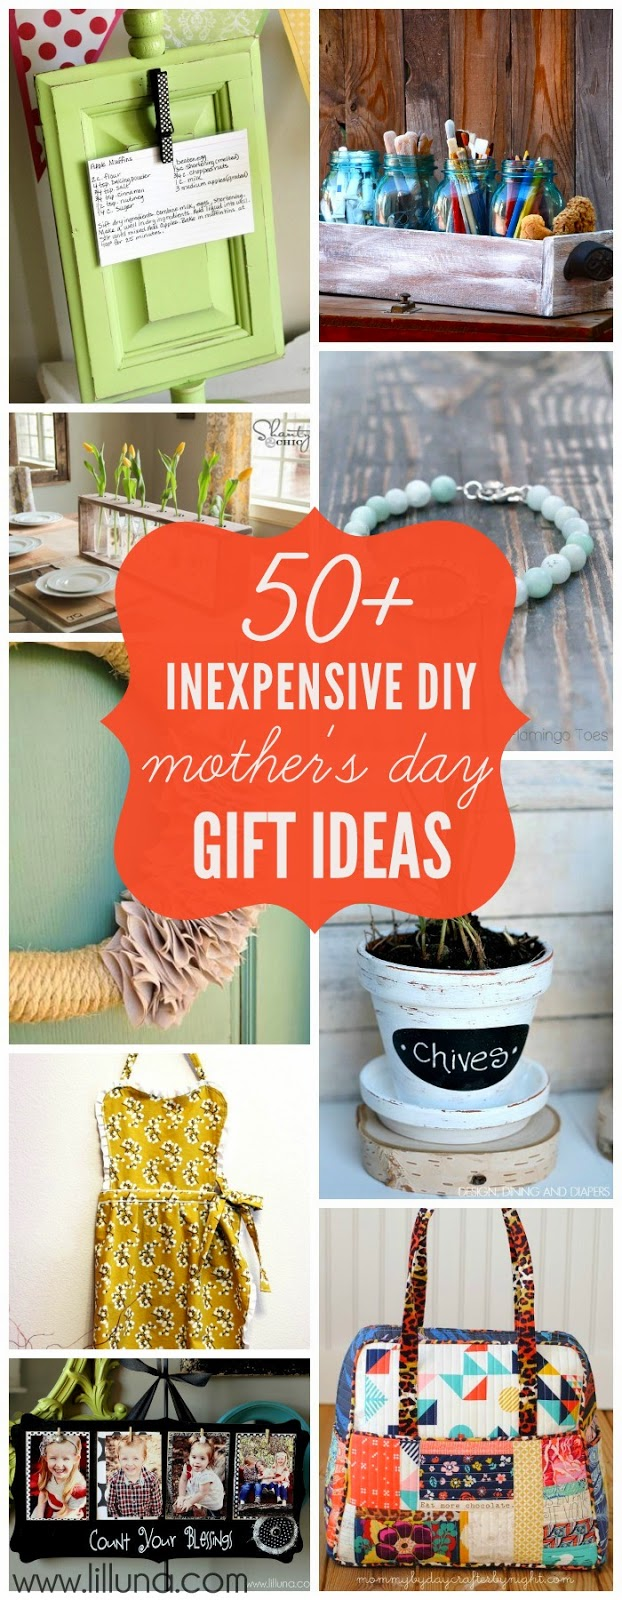 http://lilluna.com/50-inexpensive-diy-mothers-day-gift-ideas/